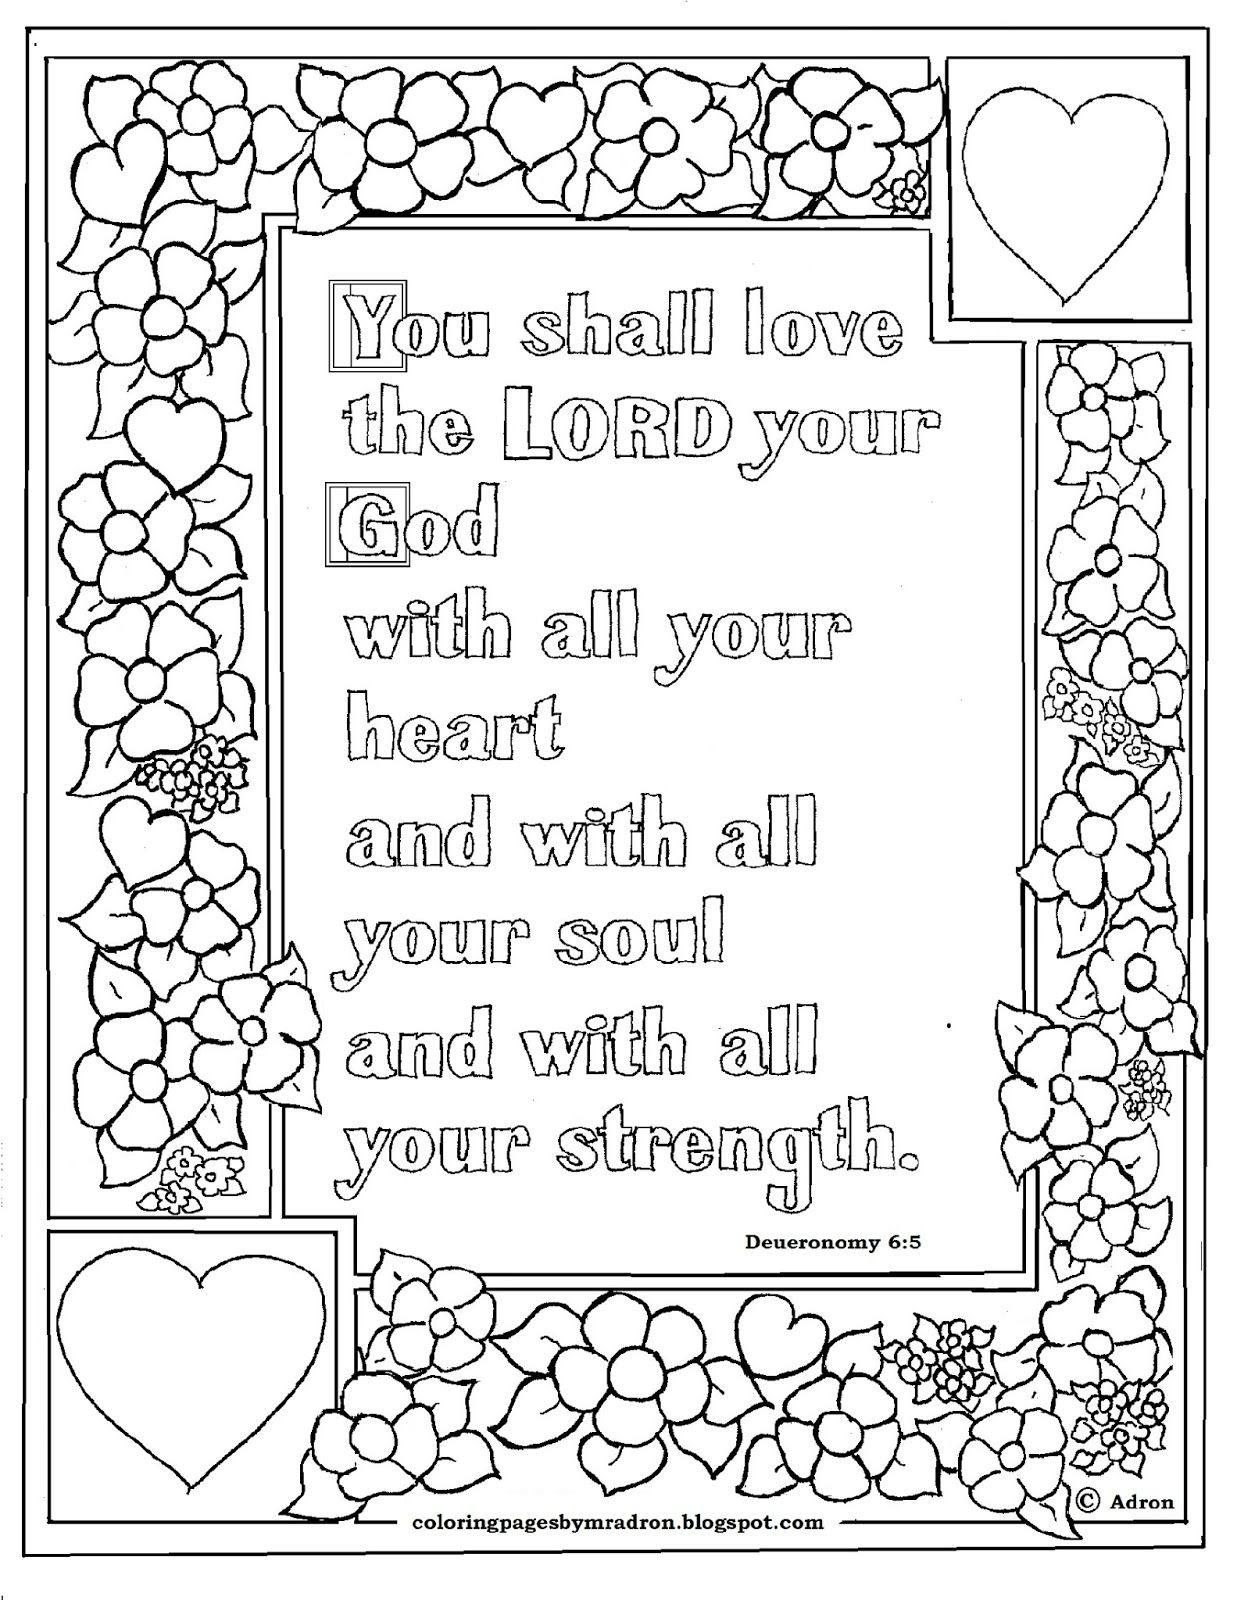 bible verse coloring pages free Download-Deuteronomy 6 5 Bible verse to print and color This is a free printable Bible verse coloring page it is perfect for children and adults t 4-j